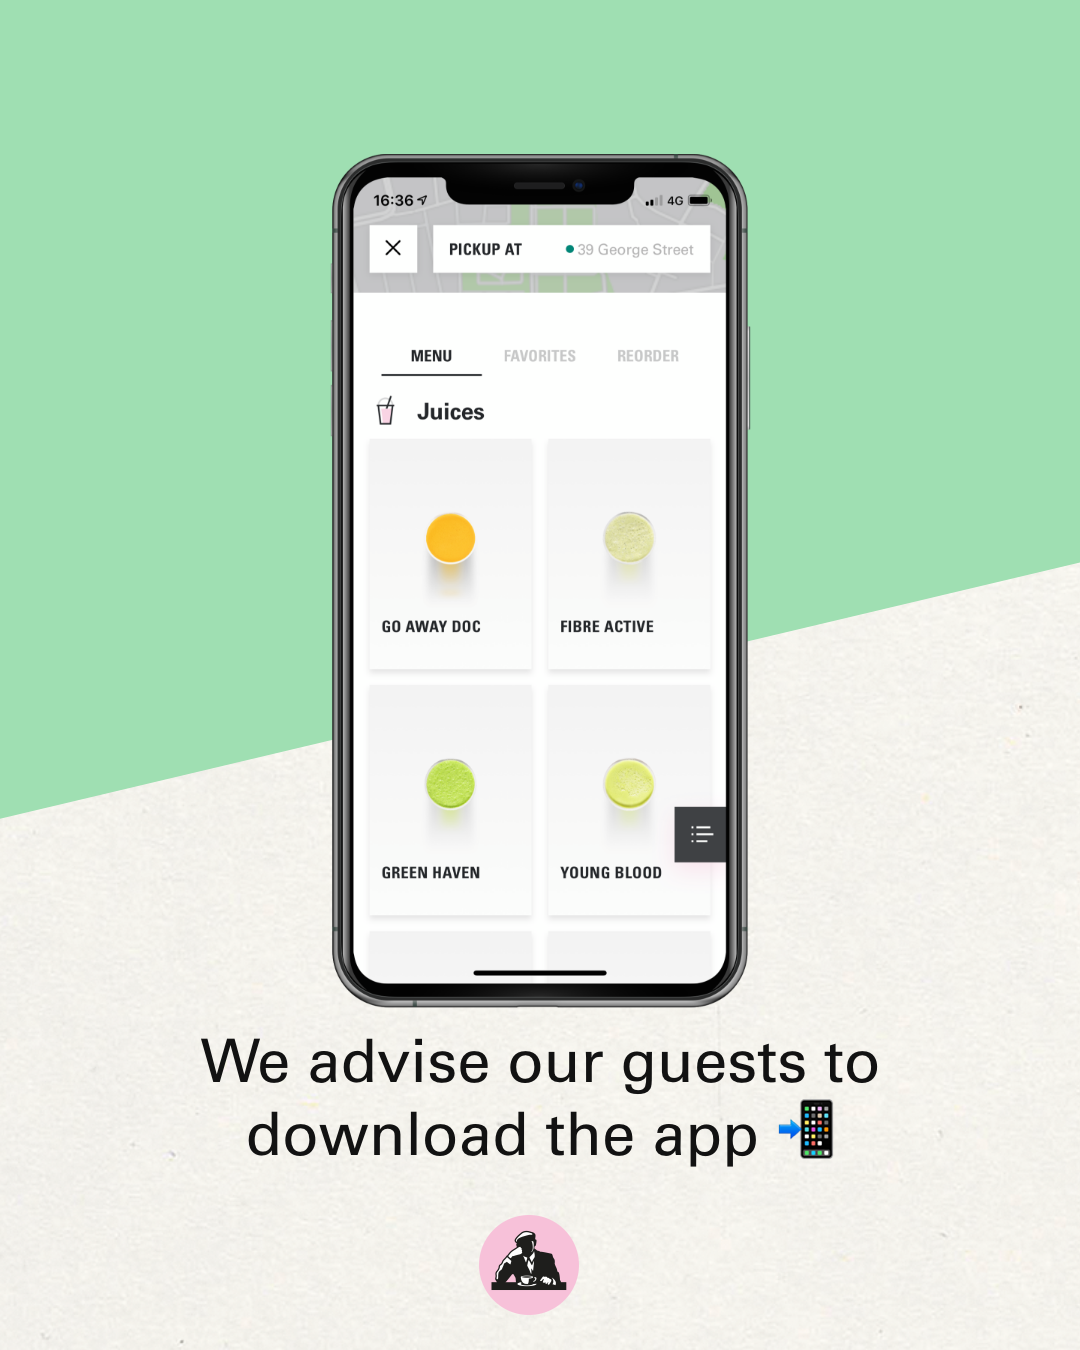 We advise our guests to download the app